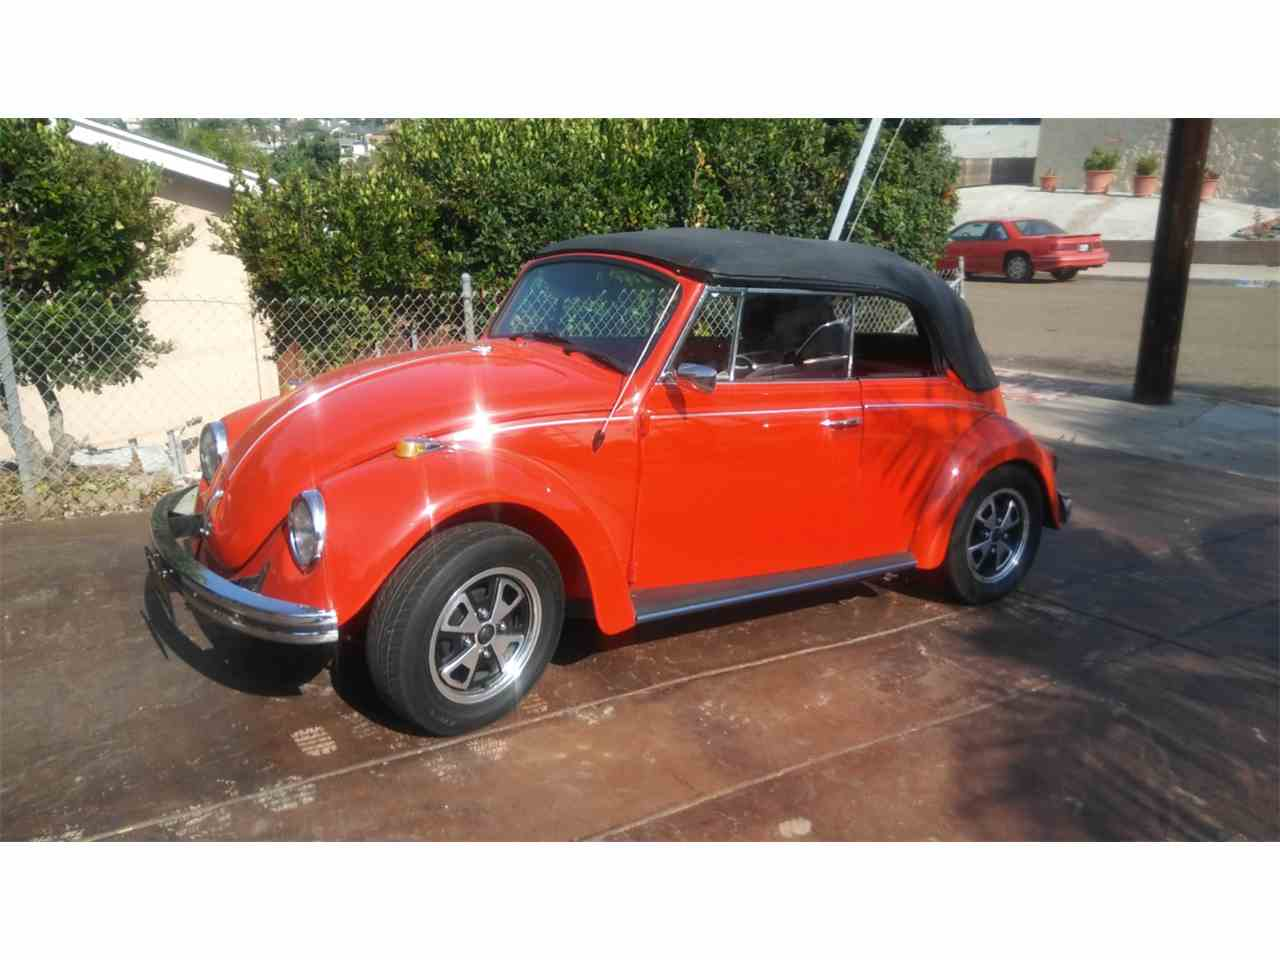 Large Picture of '68 Volkswagen Beetle - $8,999.00 Offered by a Private Seller - LN2C